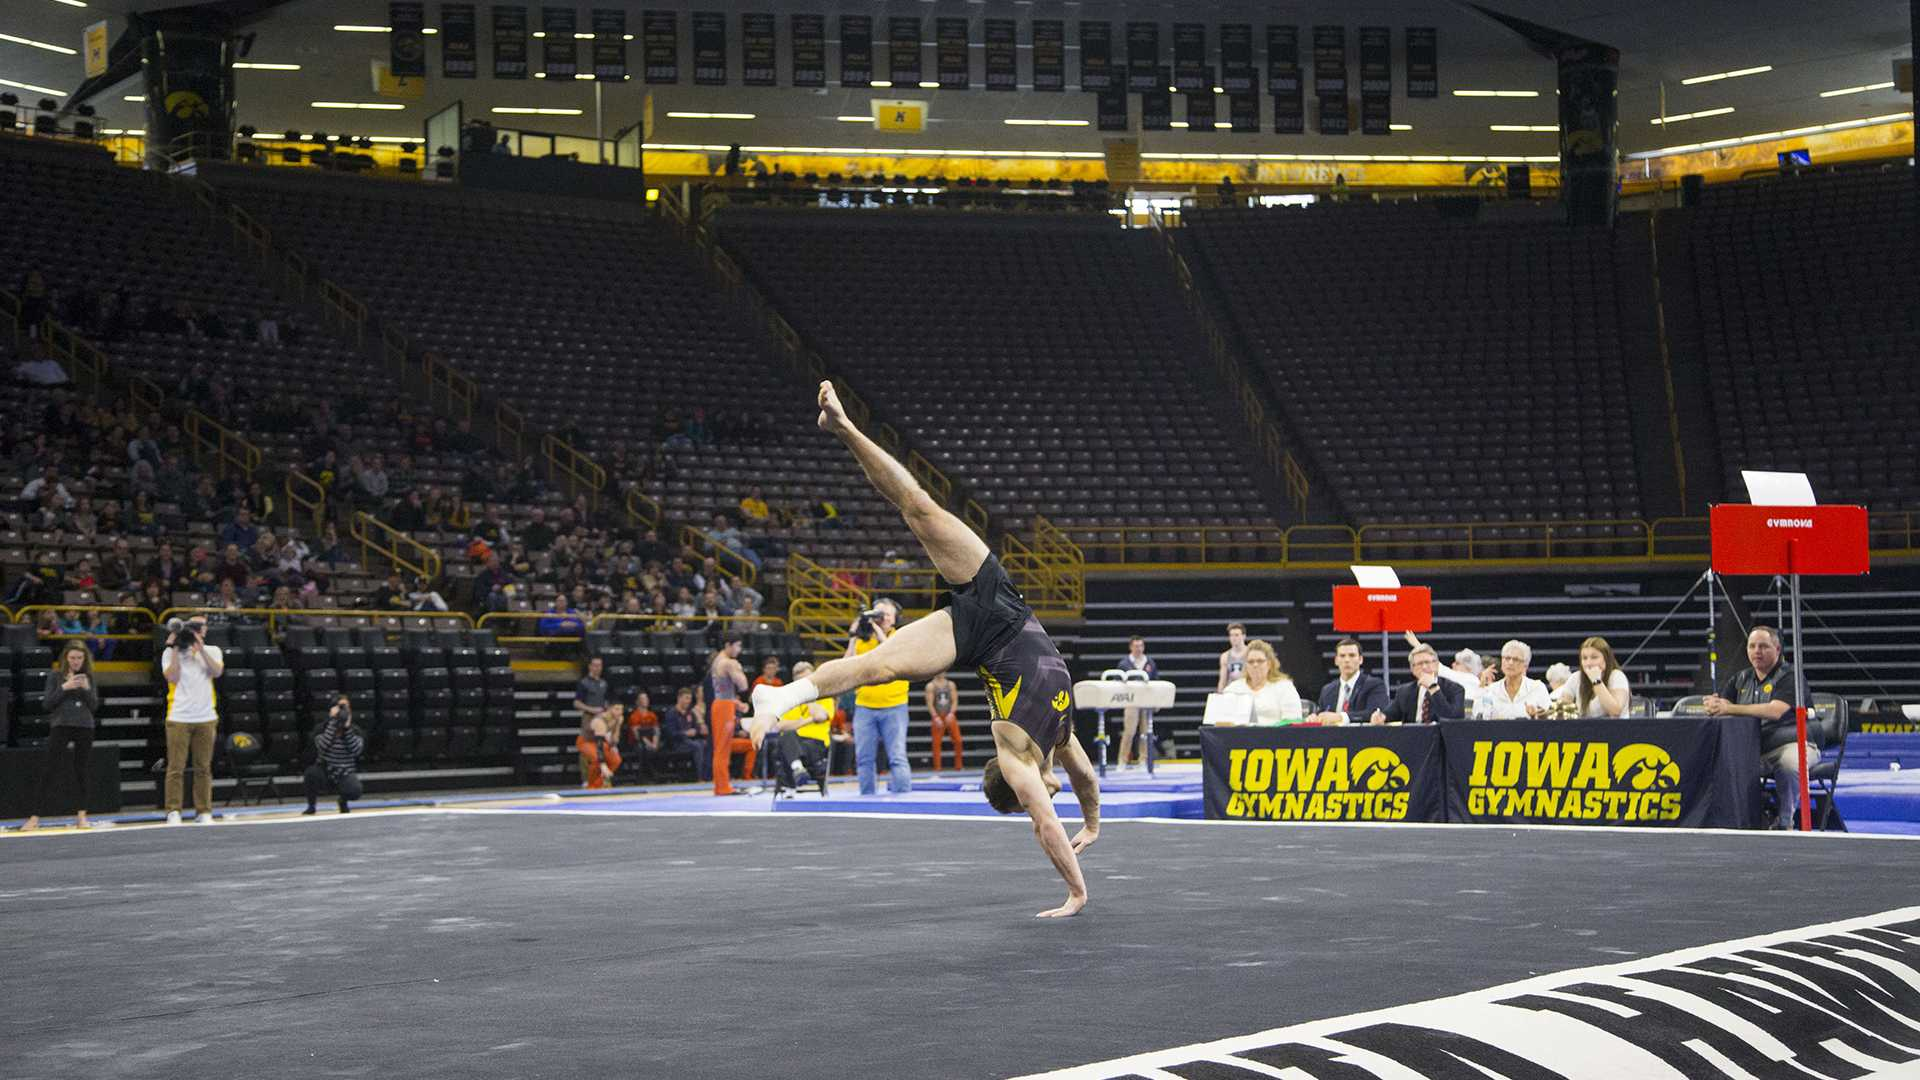 Iowa's Dylan Ellsworth performs on the floor during the Iowa/Illinois men's gymnastics meet on Saturday, Feb. 3, 2018. Ellsworth scored 13.530 on floor. The Fighting Illini defeated the Hawkeyes, 404.700-401.850. (Lily Smith/The Daily Iowan)